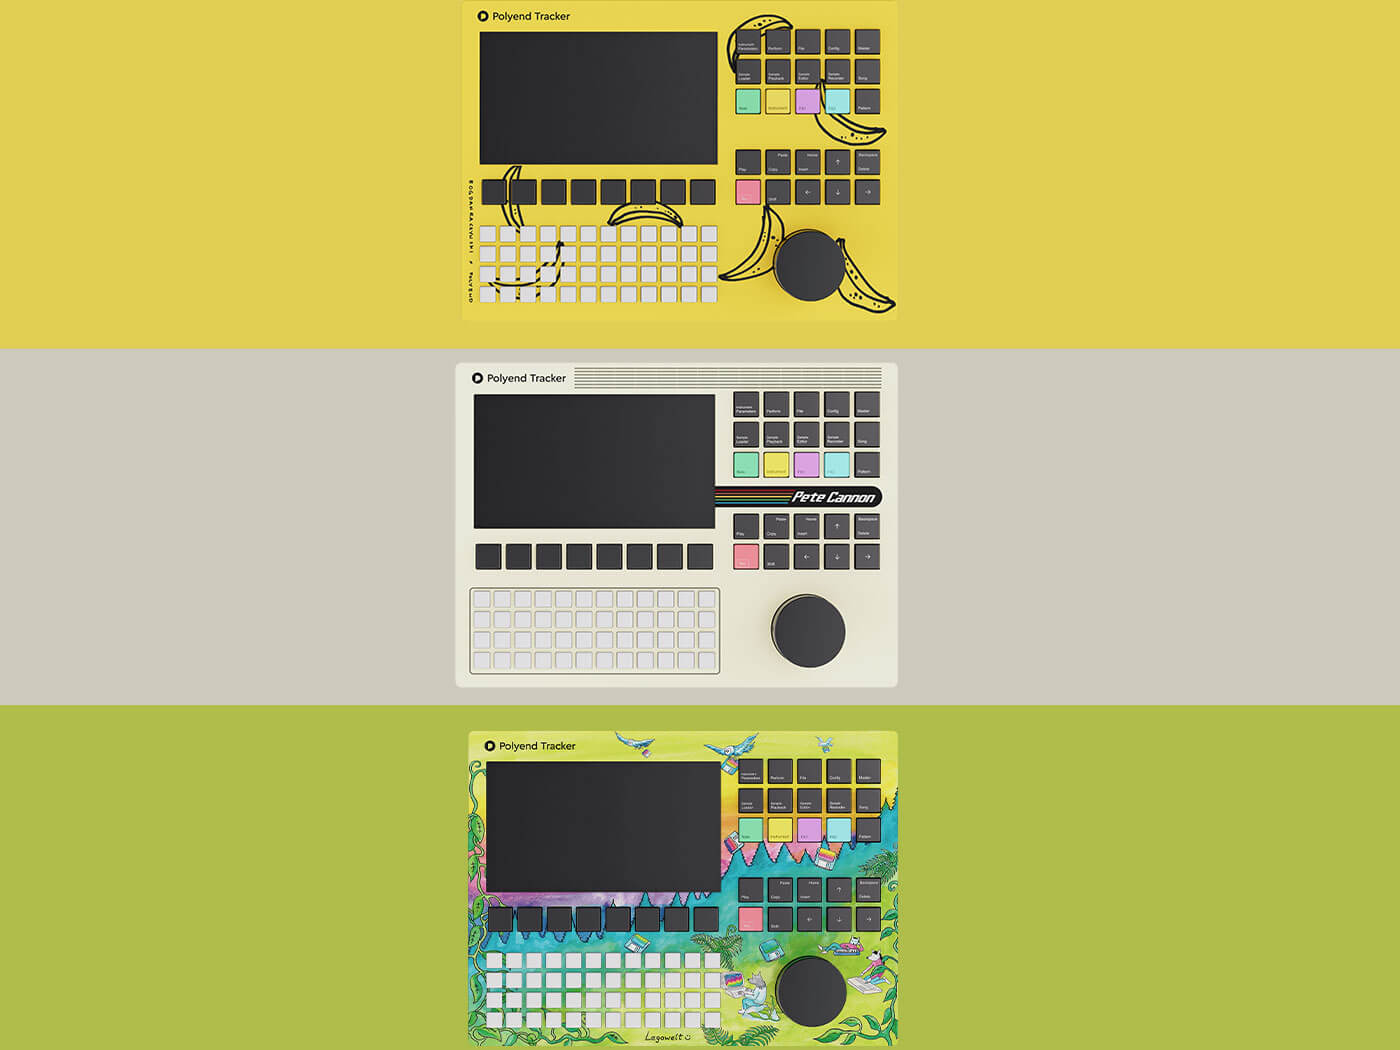 These three Polyend Trackers come with new samples and project files by artists